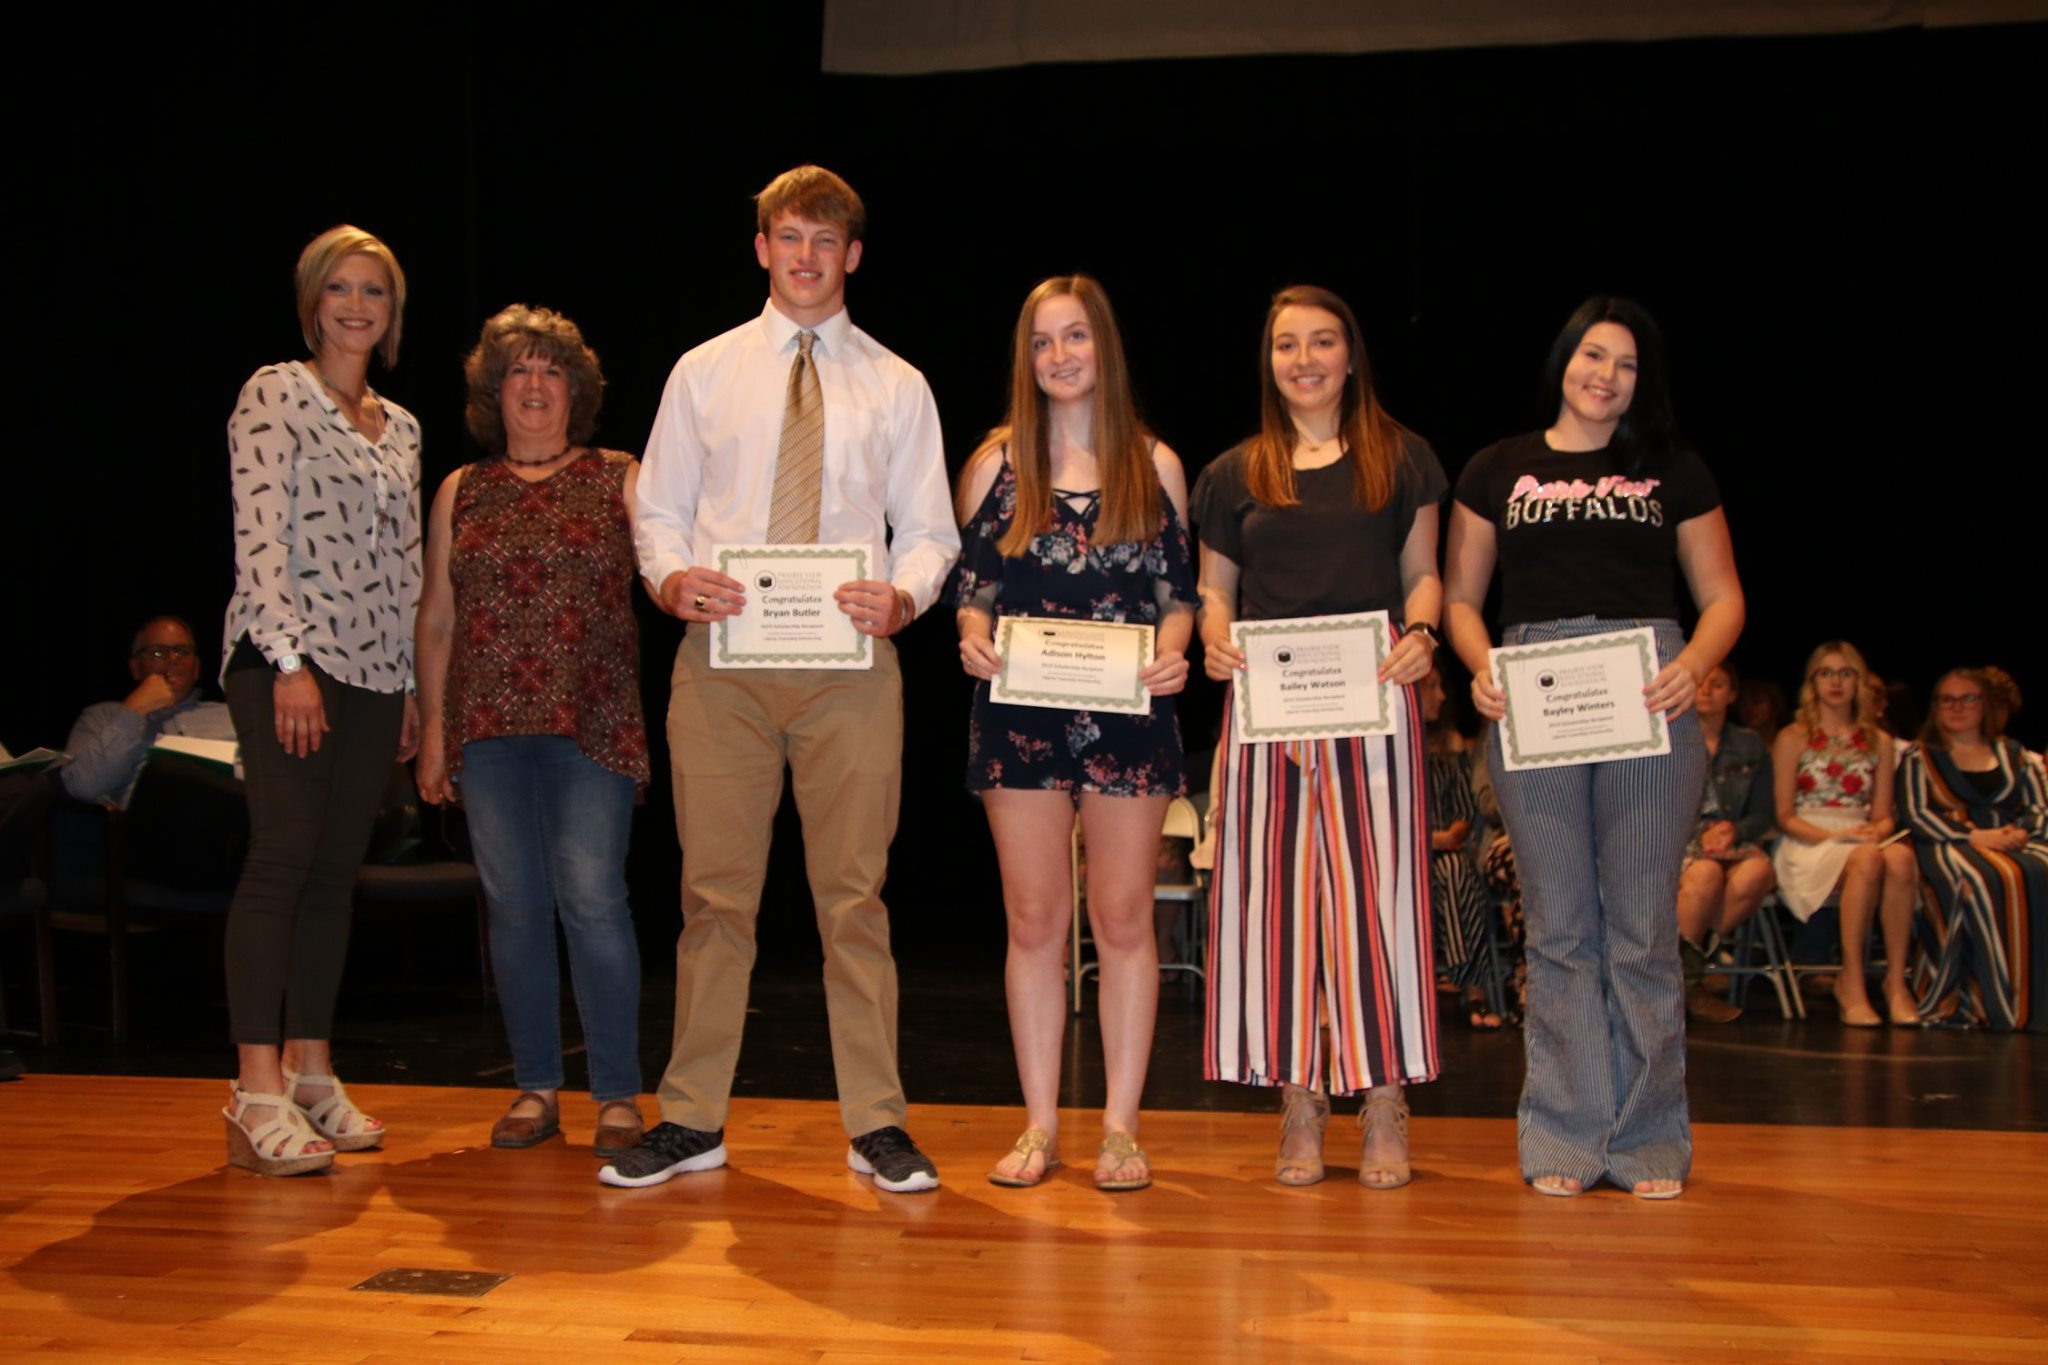 2019 Liberty Township Scholarship Recipients: Bryan Butler, Adison Hylton, Bailey Watson, Bayley Winters